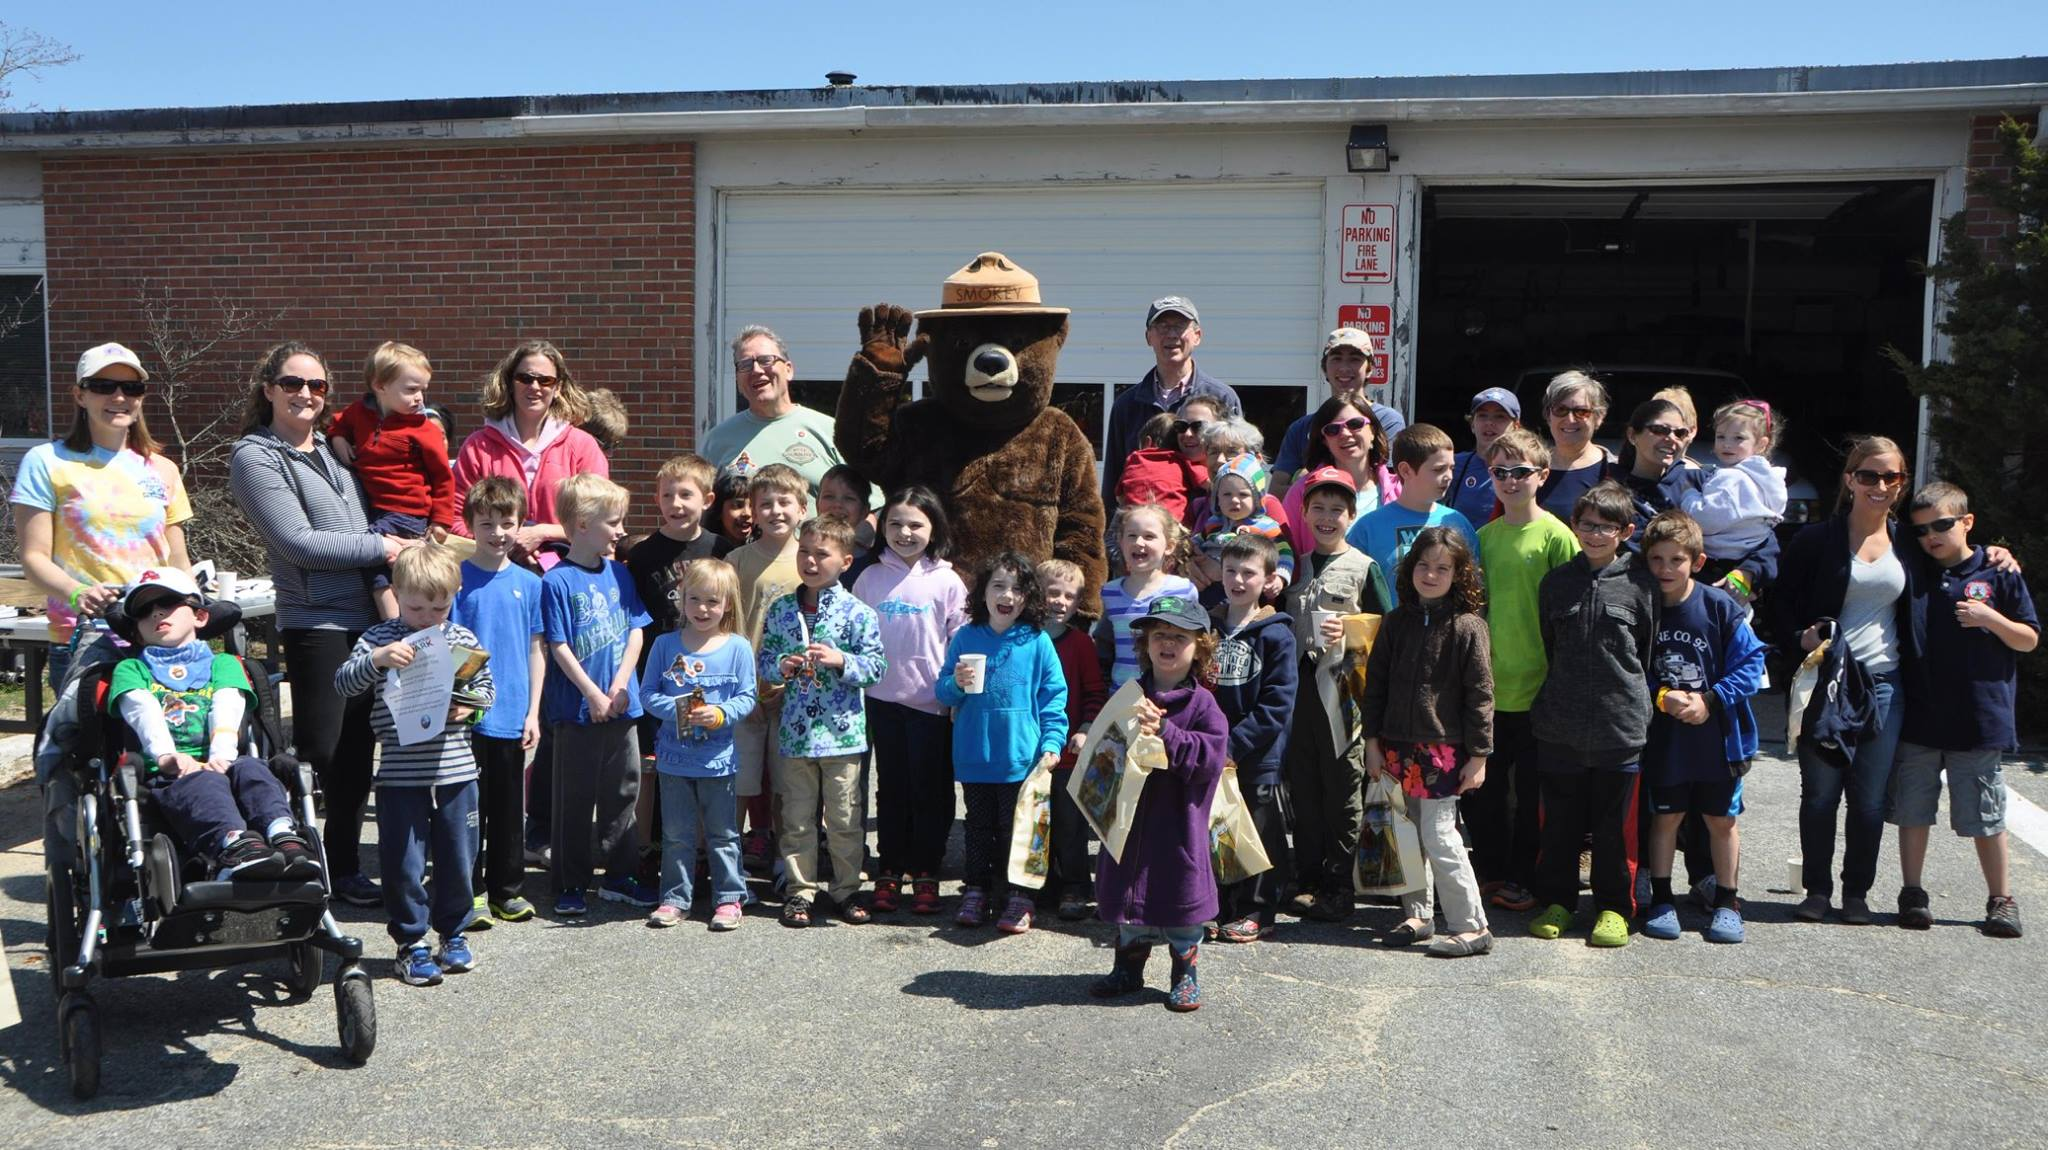 Smoky Bear surrounded by children